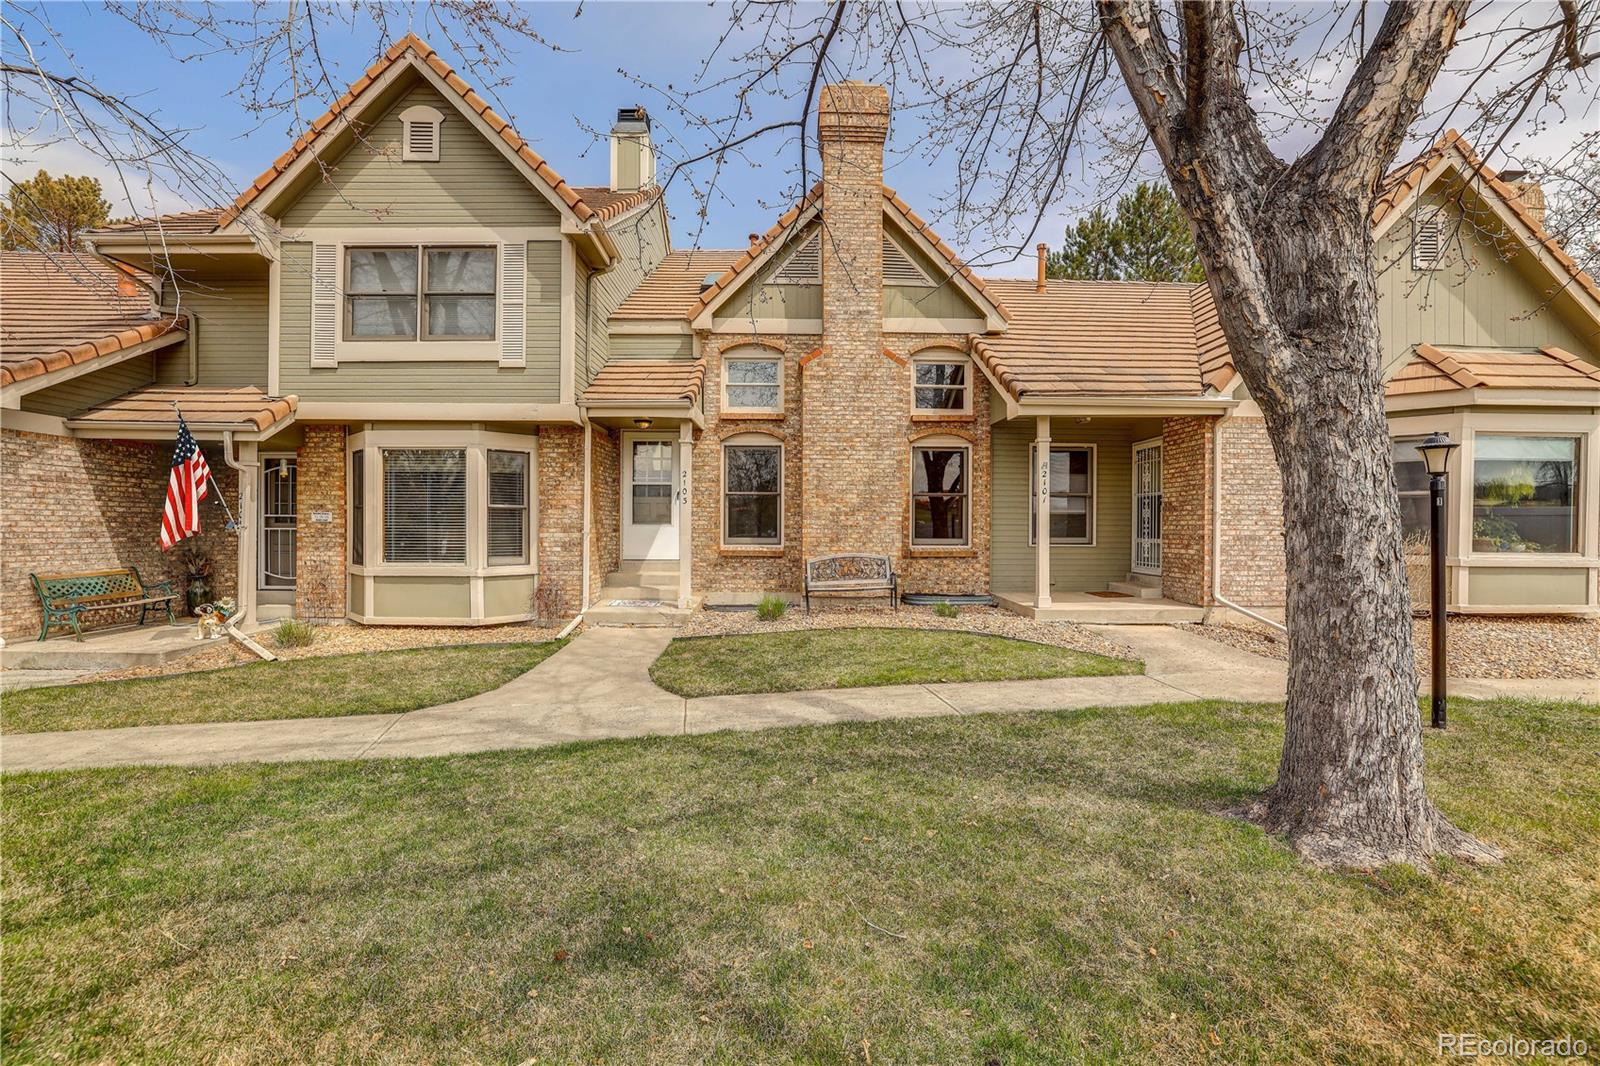 2103 Ranch Drive, Westminster CO 80234